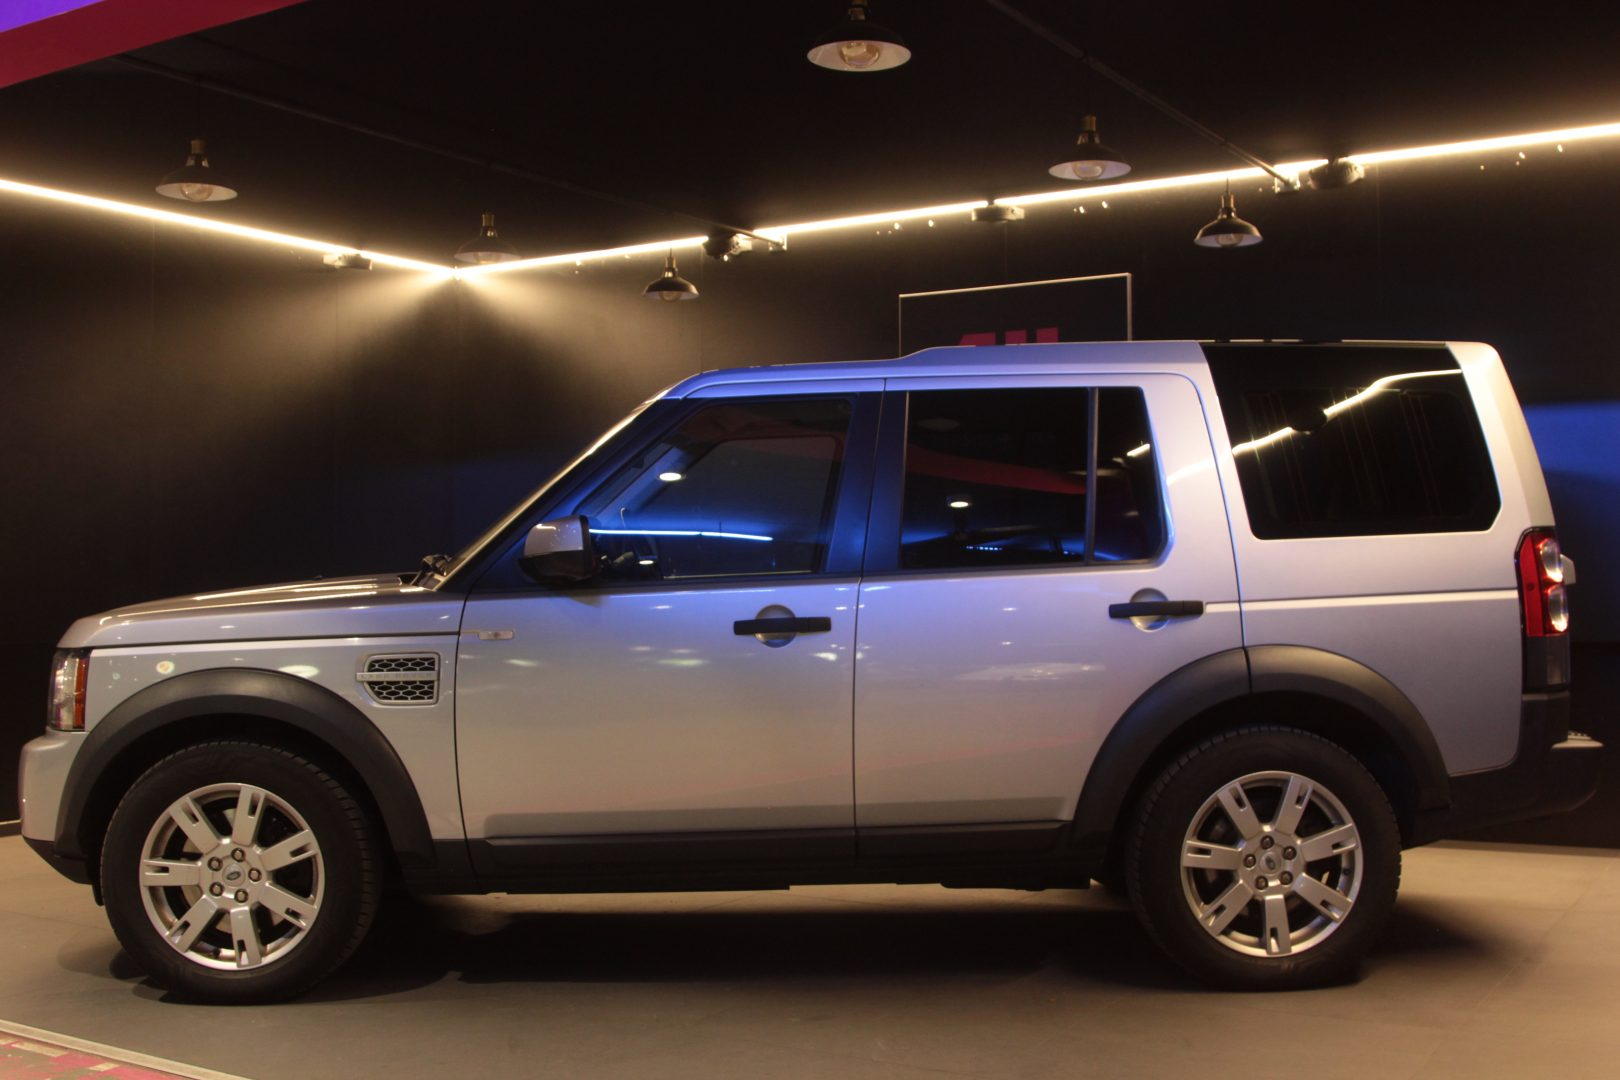 AIL Land Rover Discovery 4 TDV6 4